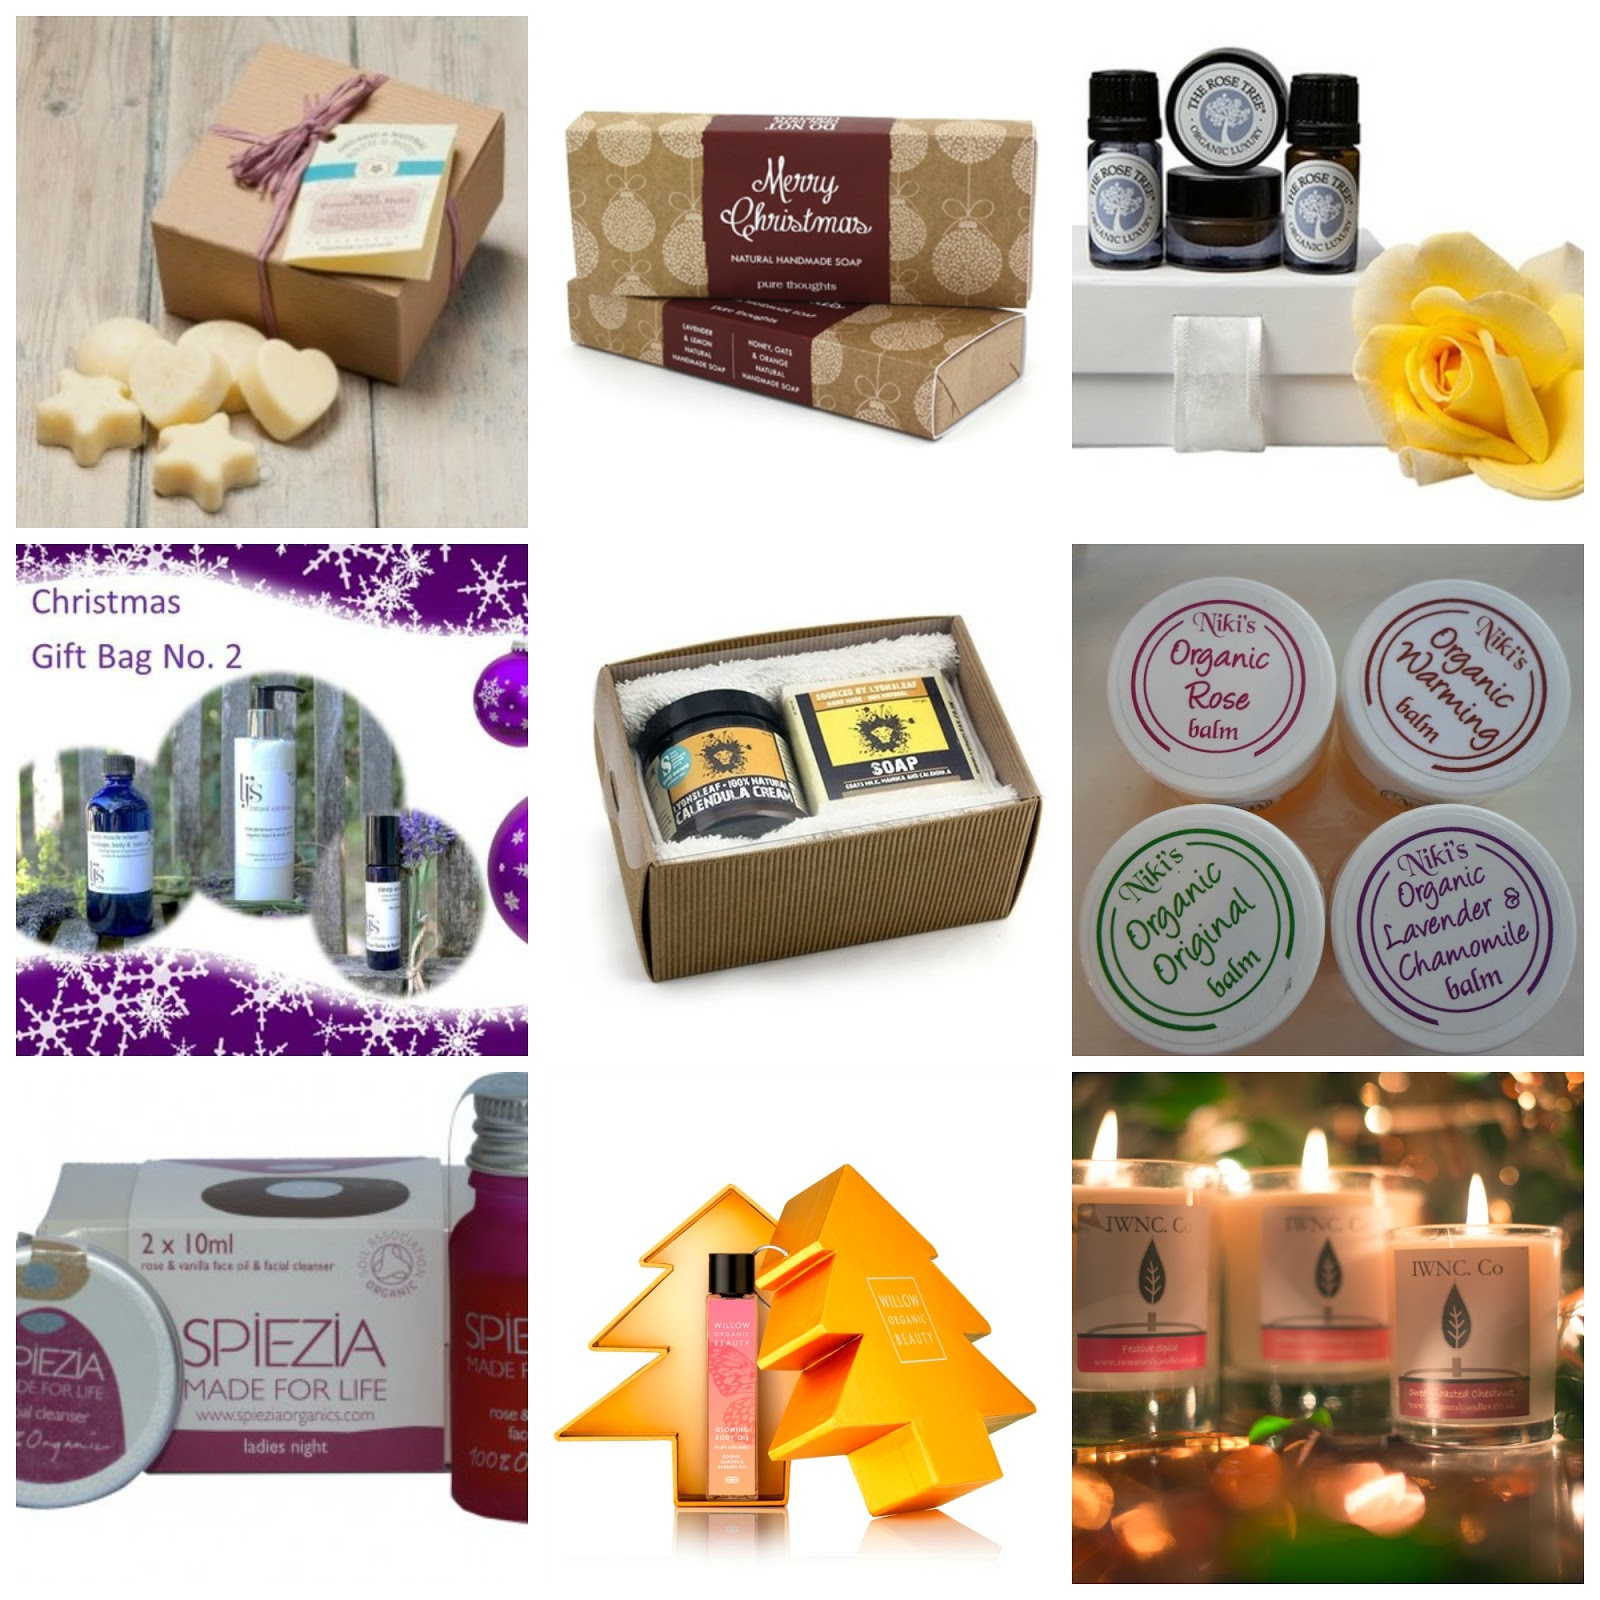 Natural & Organic Skincare Christmas Gift Ideas 2014 - Sugarpuffish